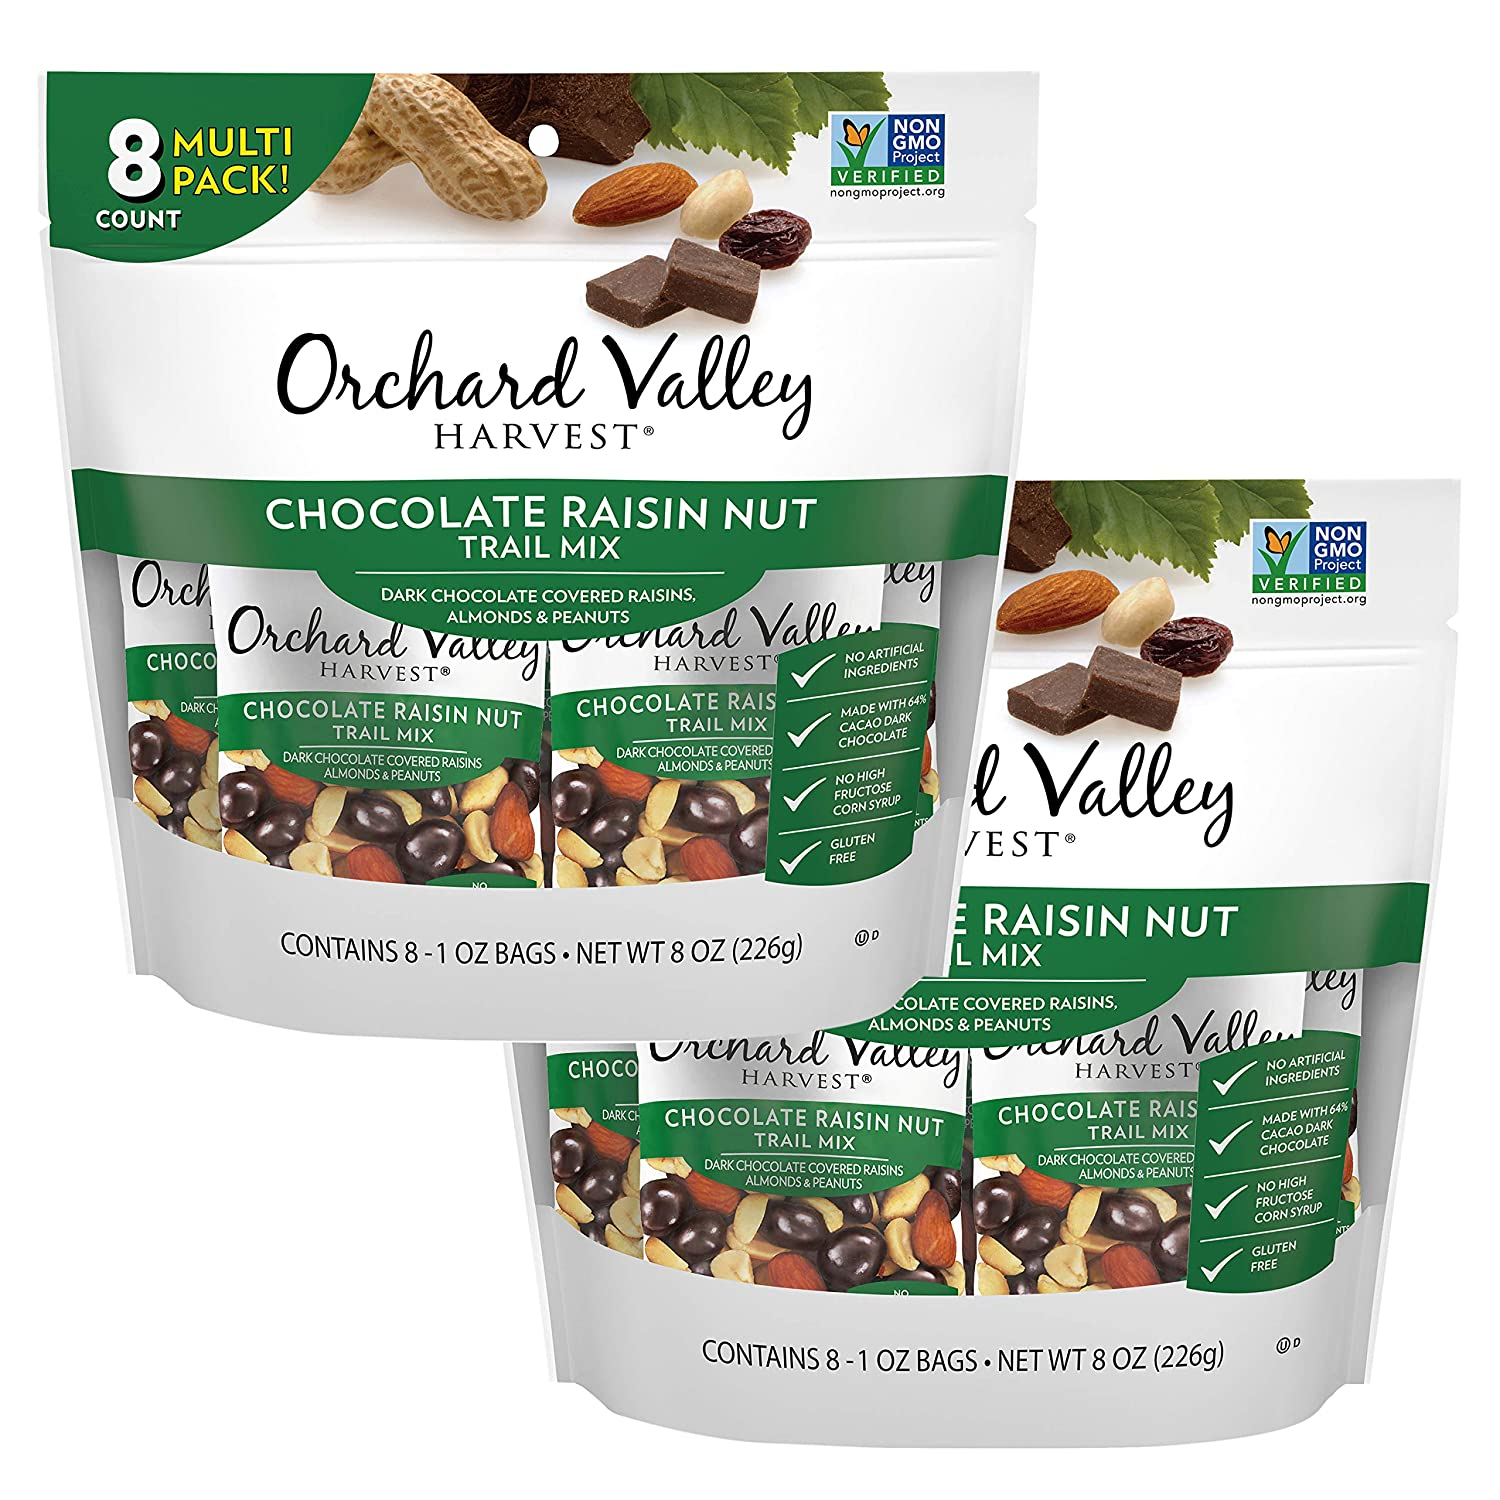 Orchard Valley Harvest Chocolate Raisin Nut Trail Mix, 8 ct Multi Pack, Bundle of 2, Non-GMO, No Artificial Ingredients